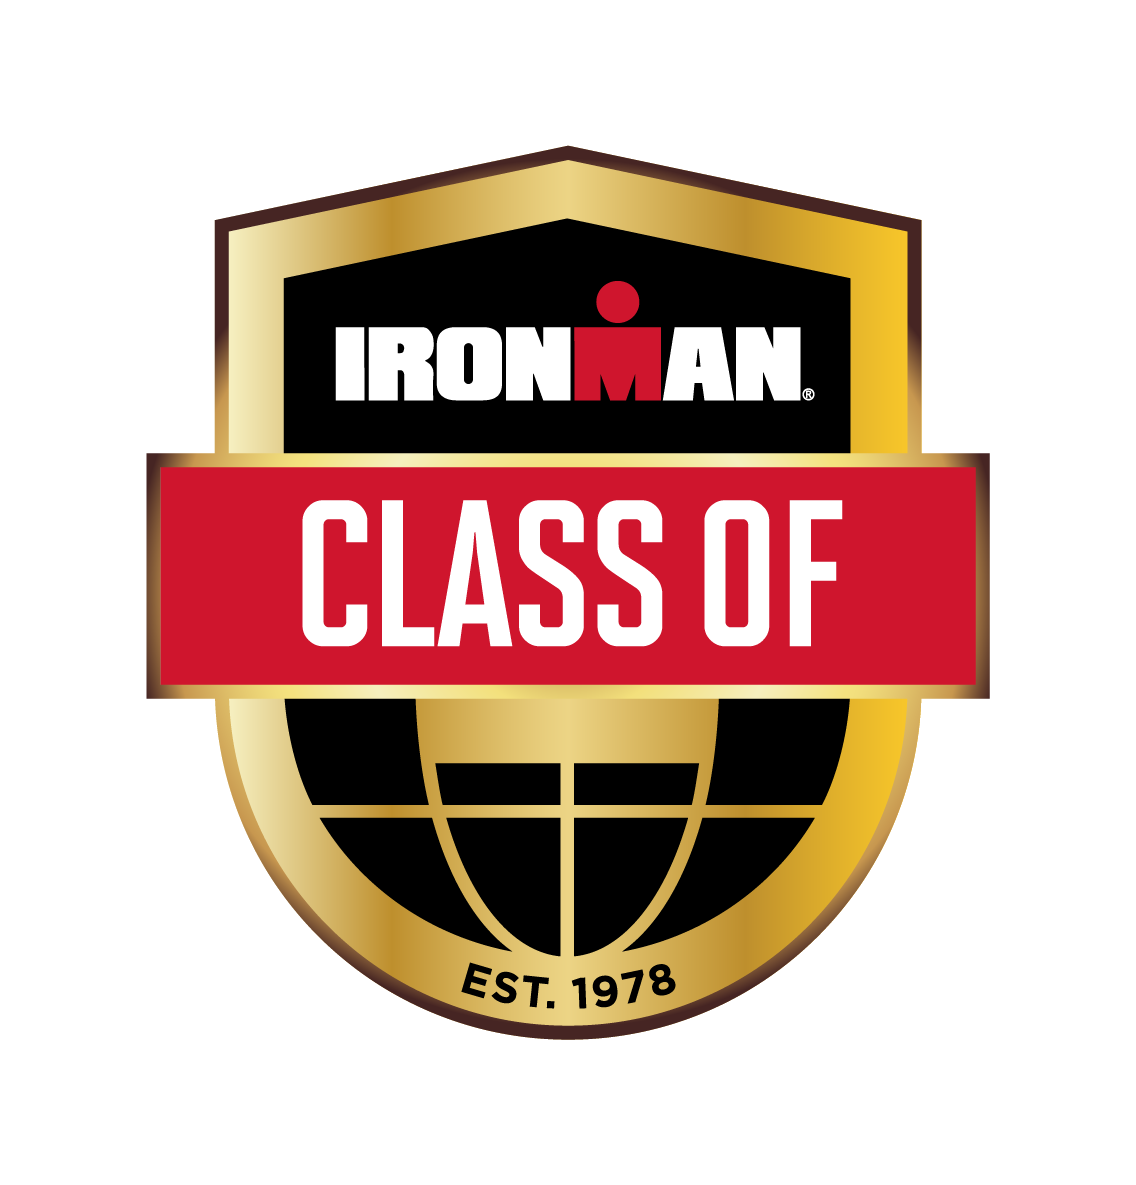 You Never Forget Your First IRONMAN: IRONMAN Celebrates